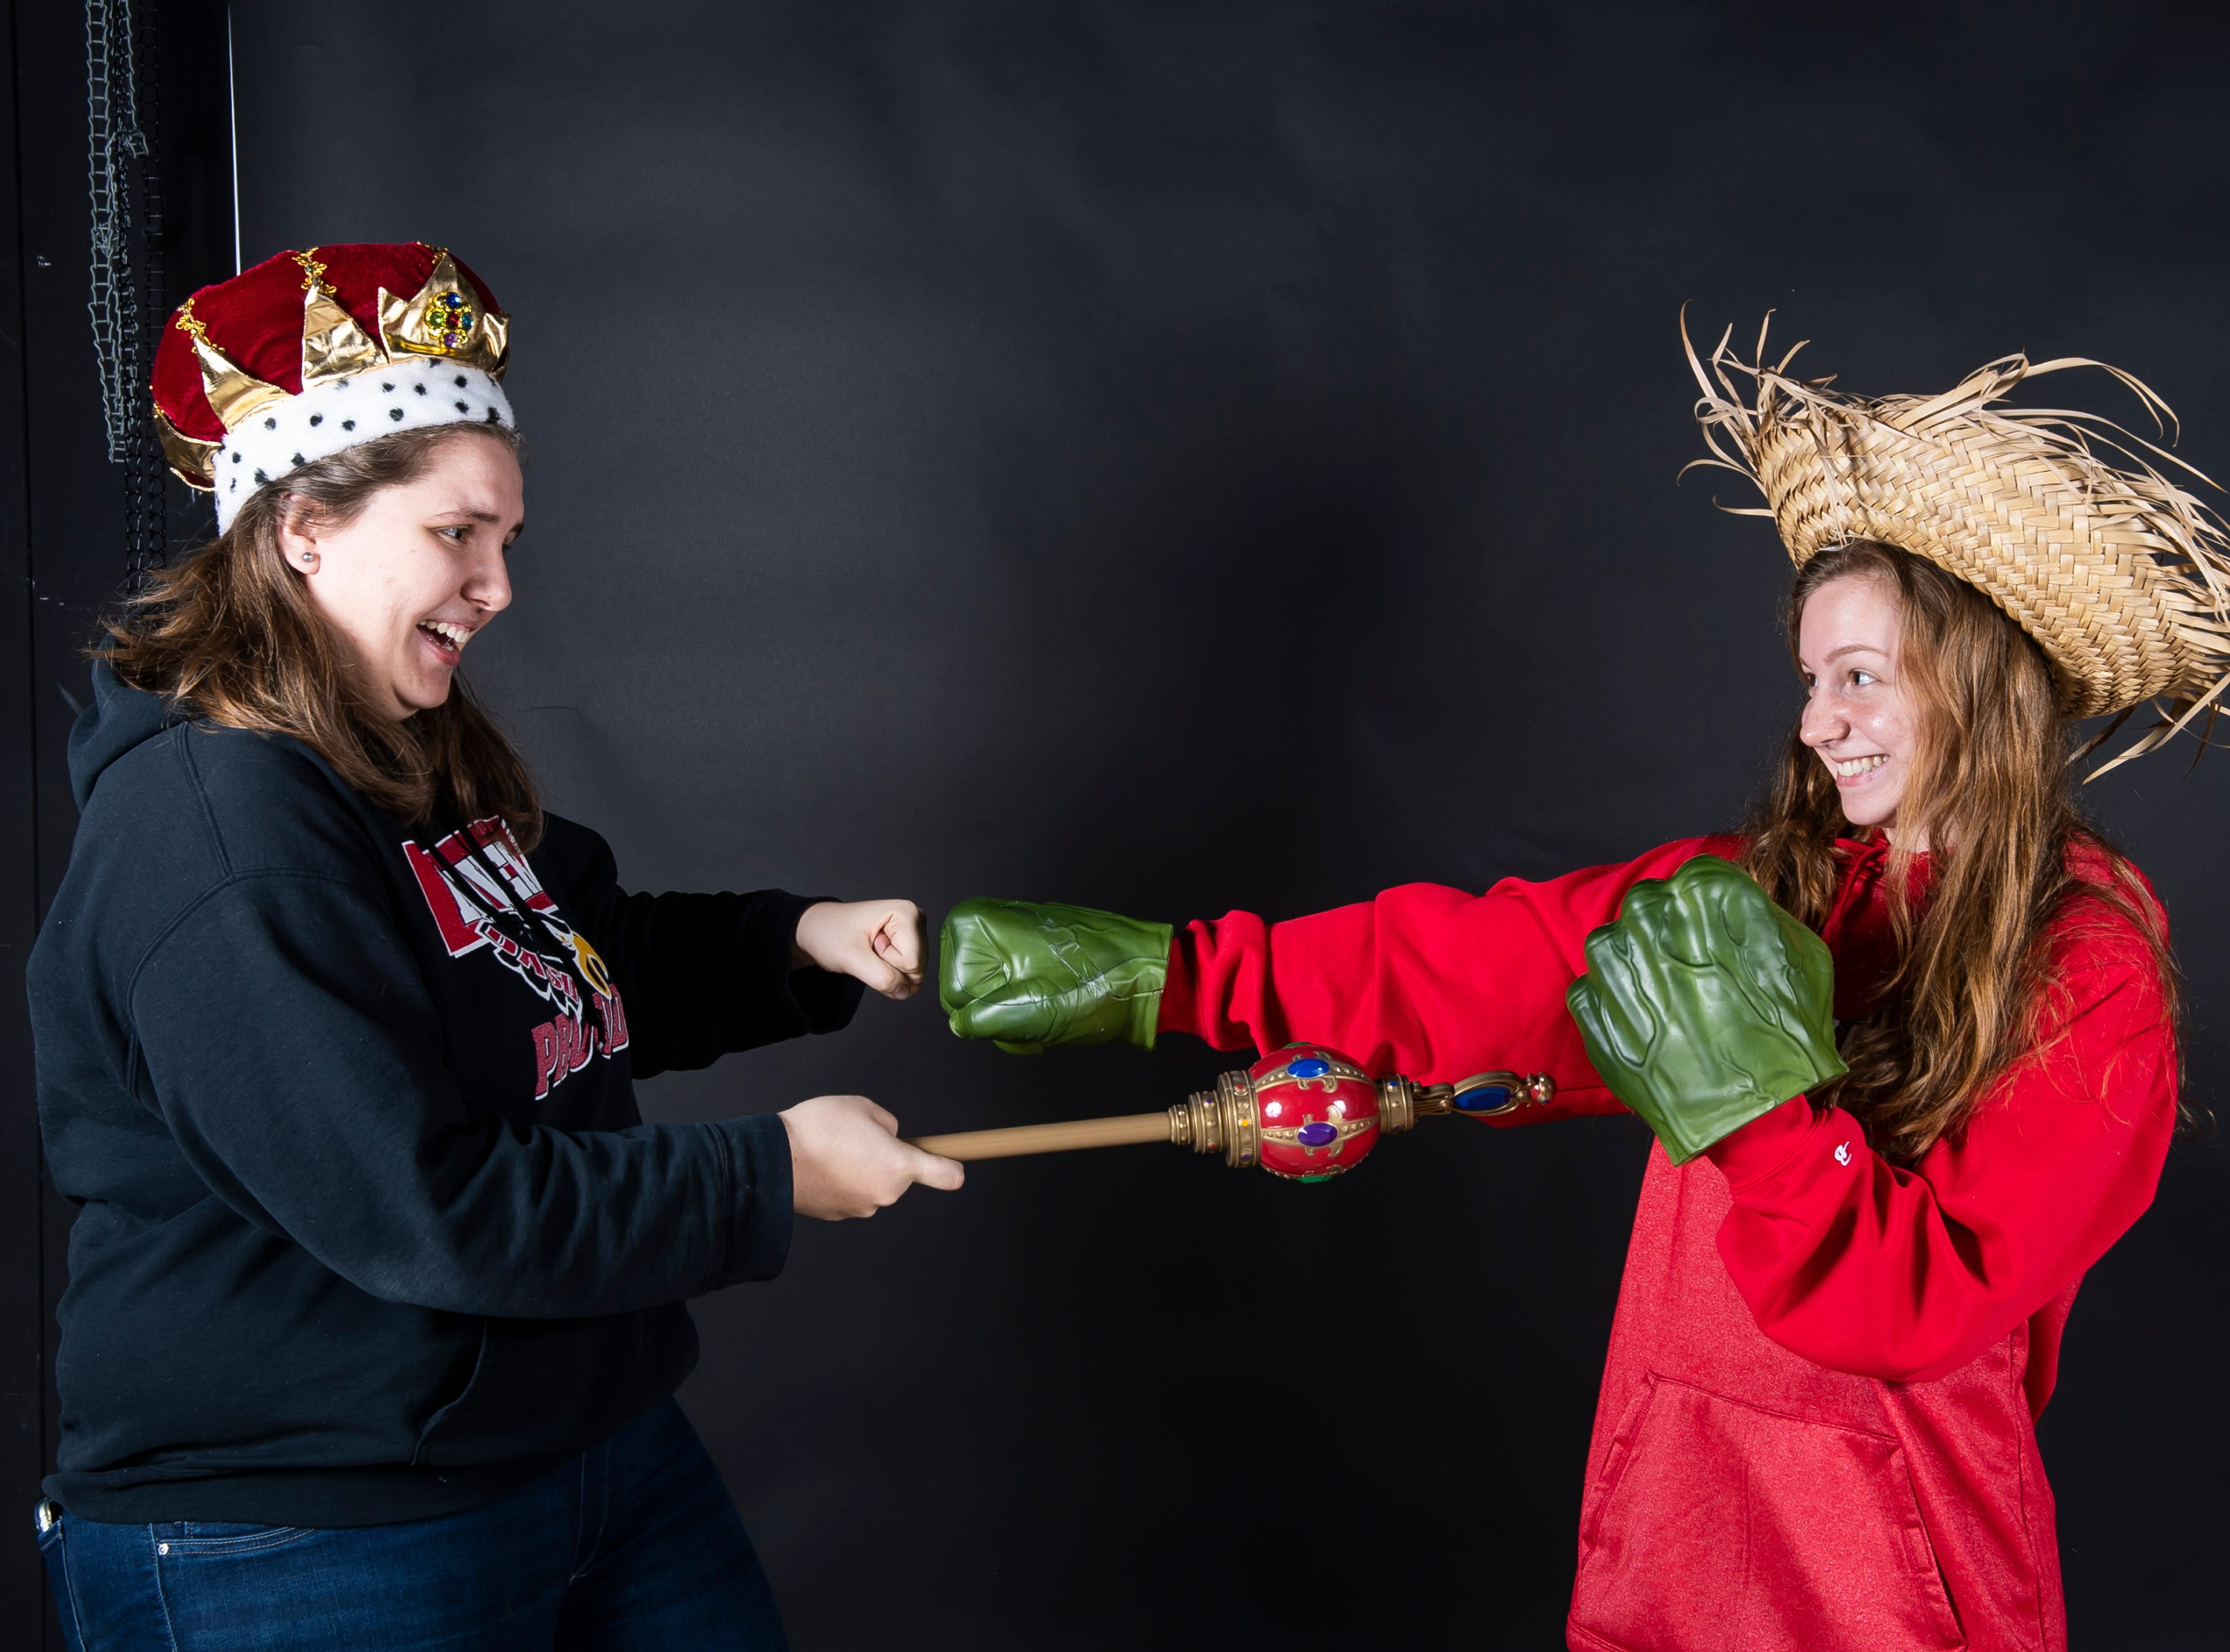 (From left) Dover lacrosse players Katie Sweitzer and Paige Lantz strike a pose in the GameTimePA photo booth during spring sports media day in York Sunday, March 10, 2019.